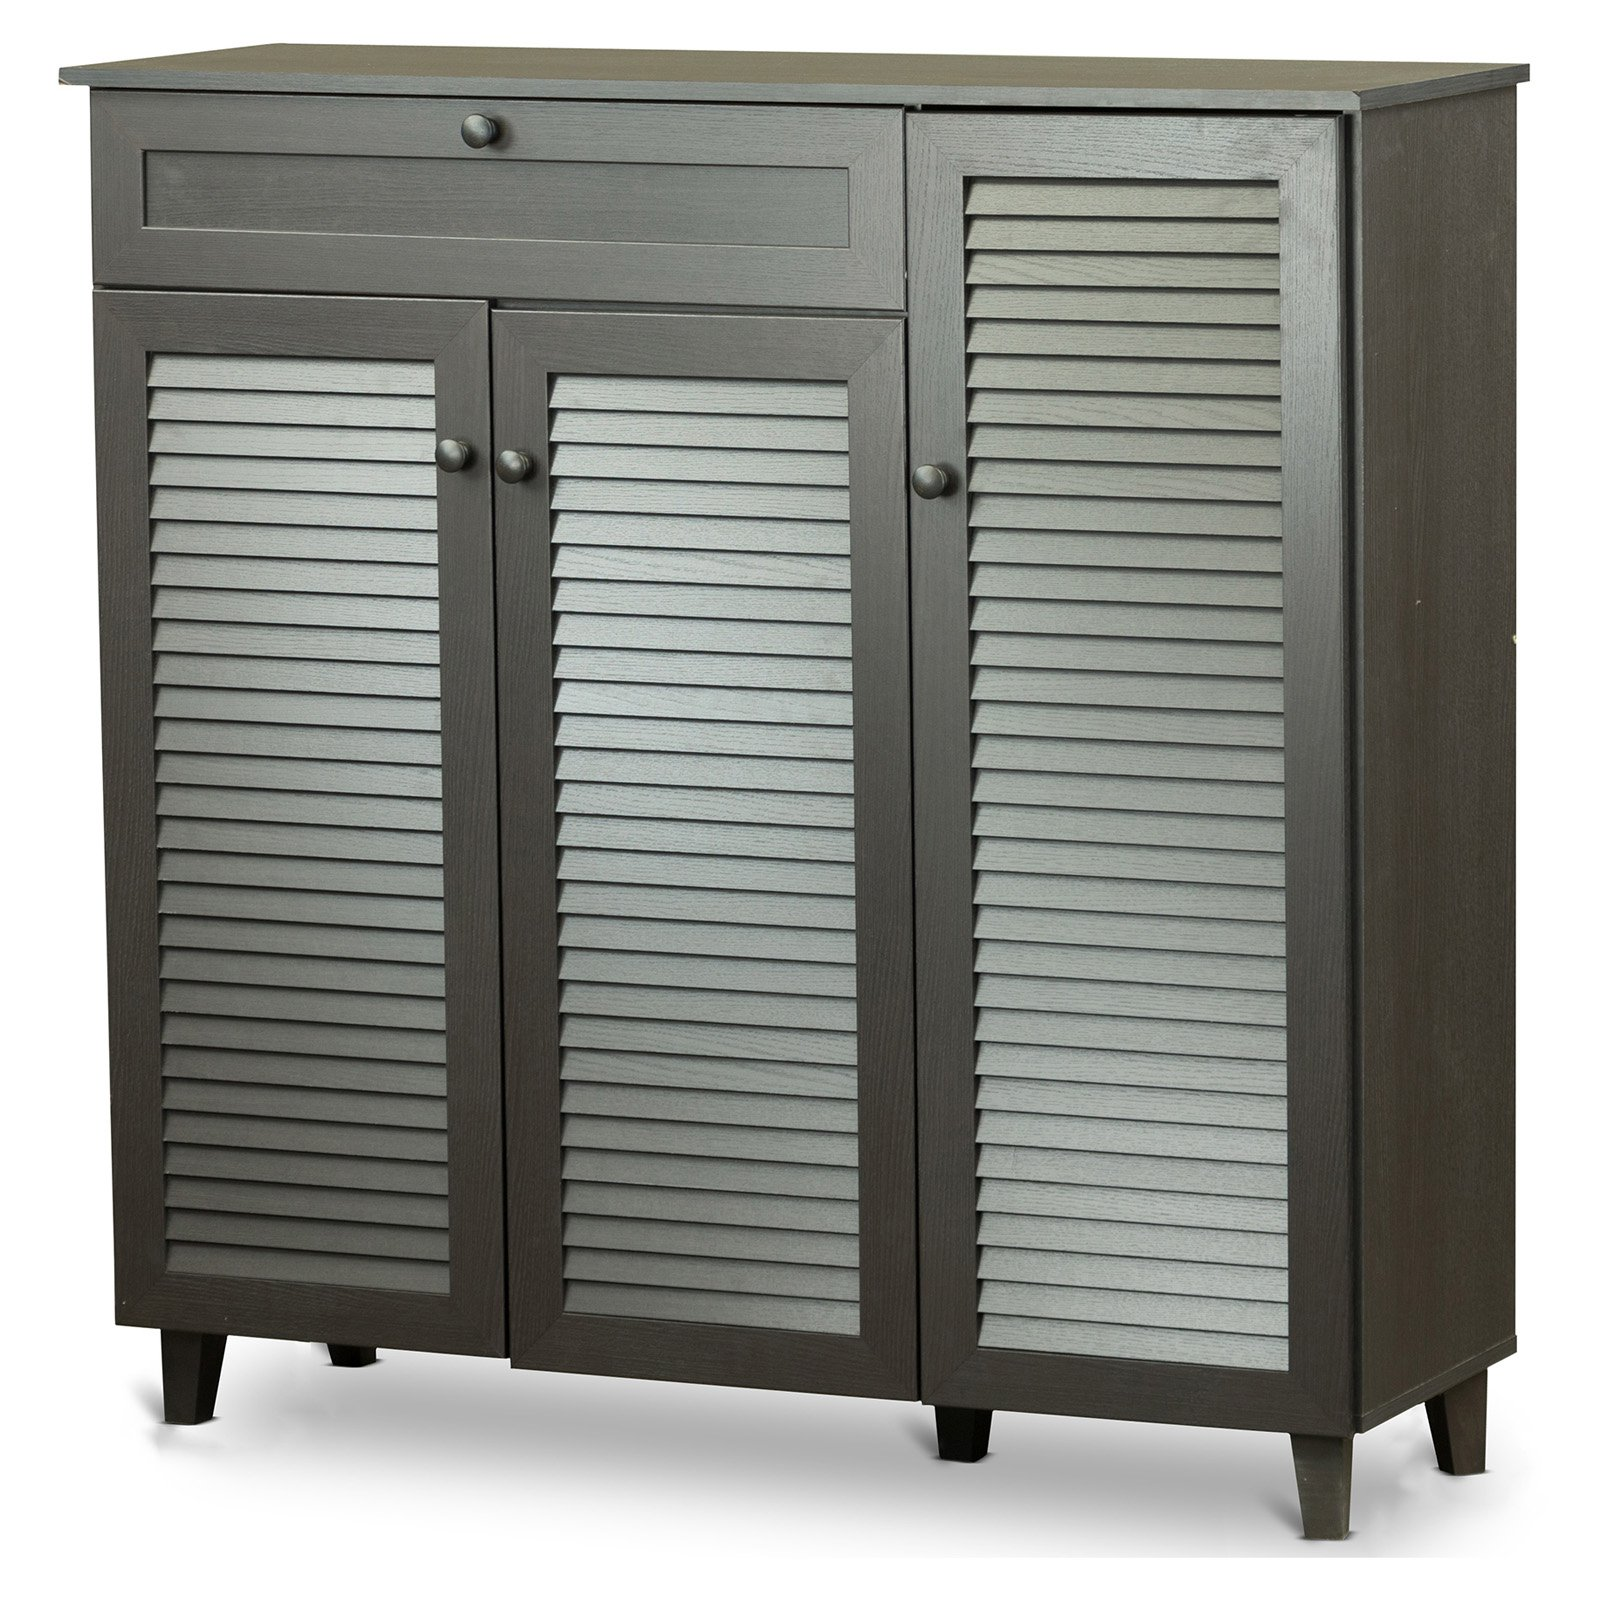 Charmant Baxton Studio Pocillo Wood Shoe Storage Cabinet   Walmart.com